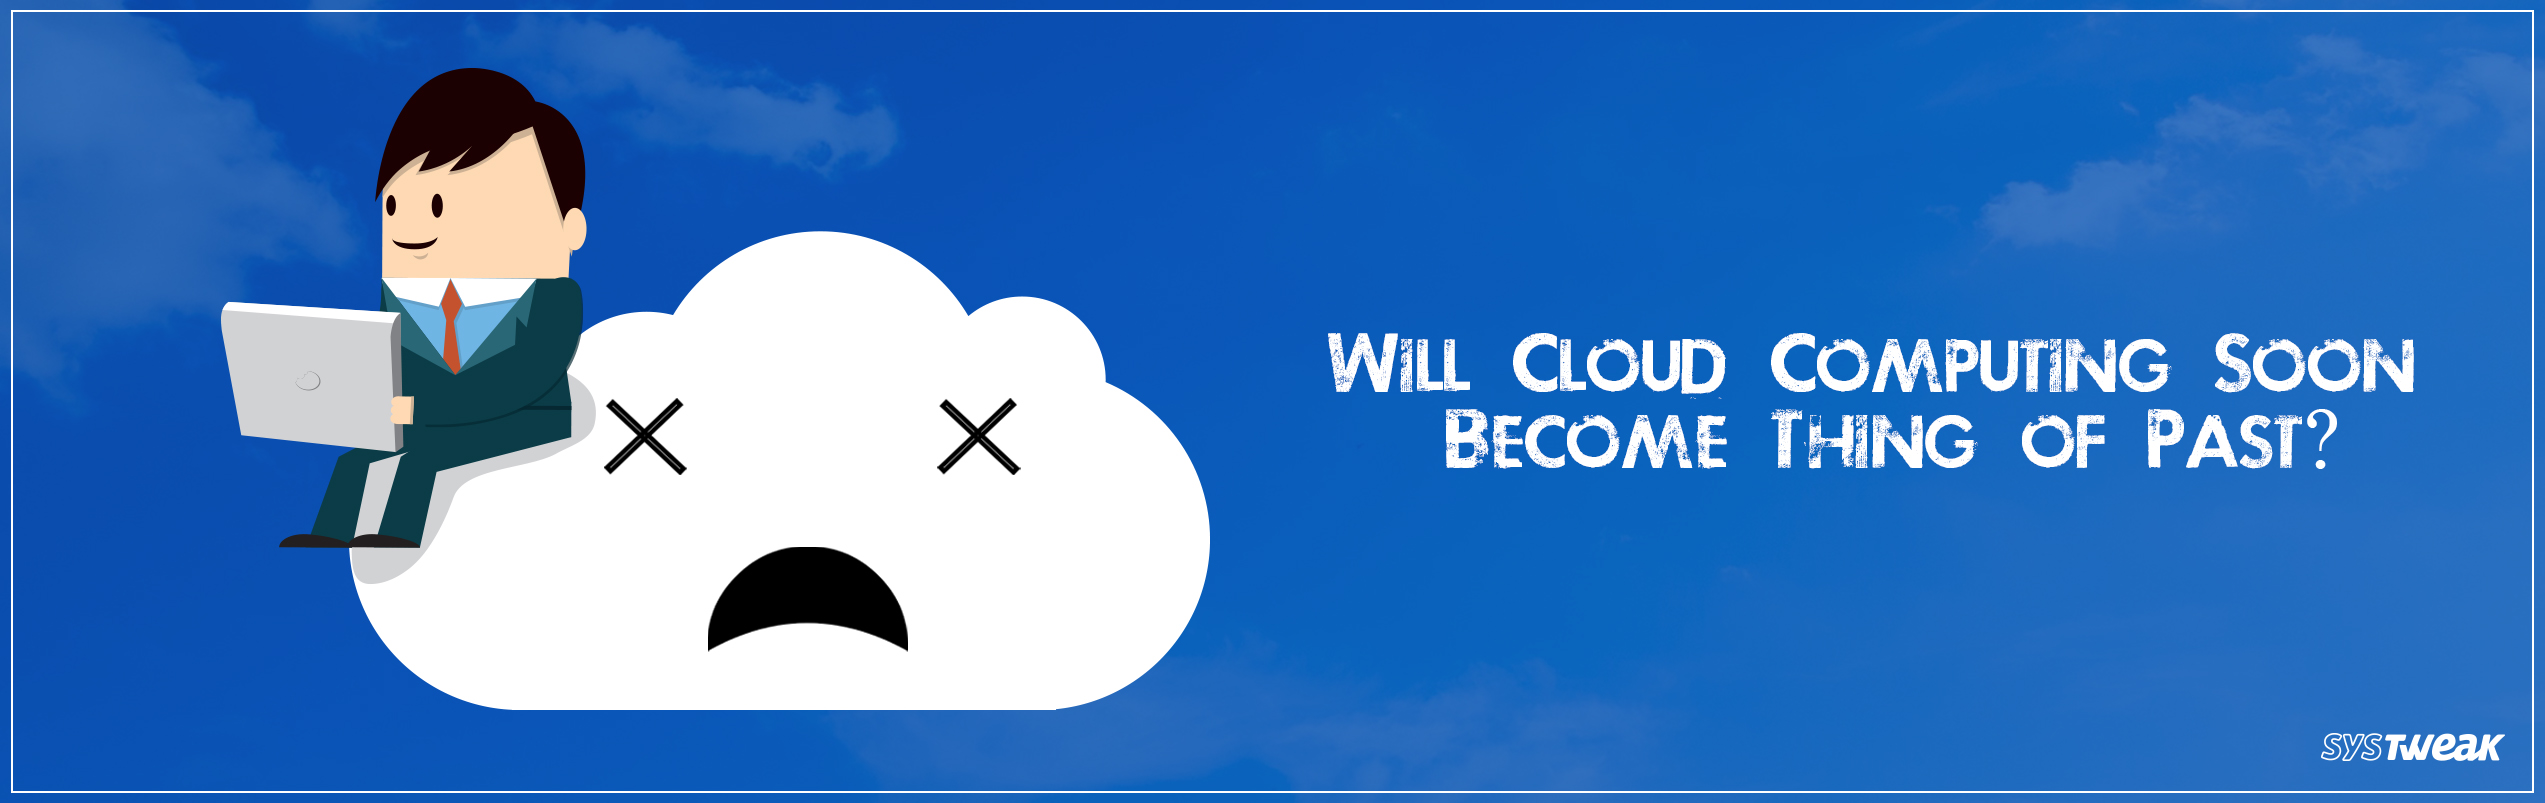 Future Of Cloud Computing: Will It Be Dead Soon?